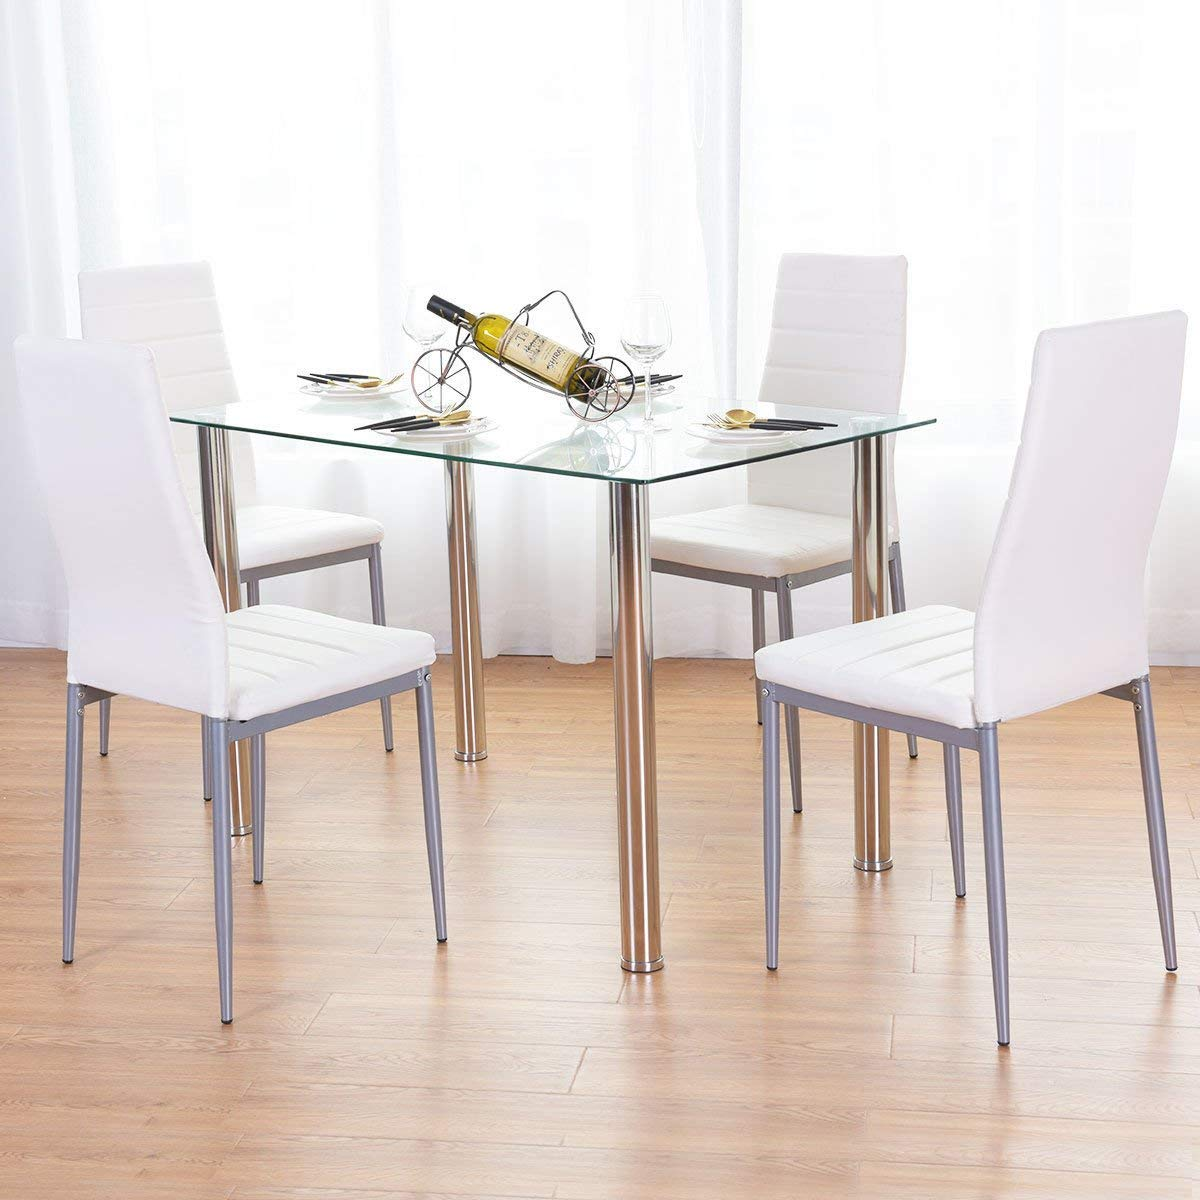 5 Piece Dining Set Table and 4 Chairs Glass Metal Kitchen Breakfast Furniture, Sturdy Tempered Glass and Powder-Coated Steel Construction, Last for Years to Come, Four Comfortable Sponge-Filled Stools